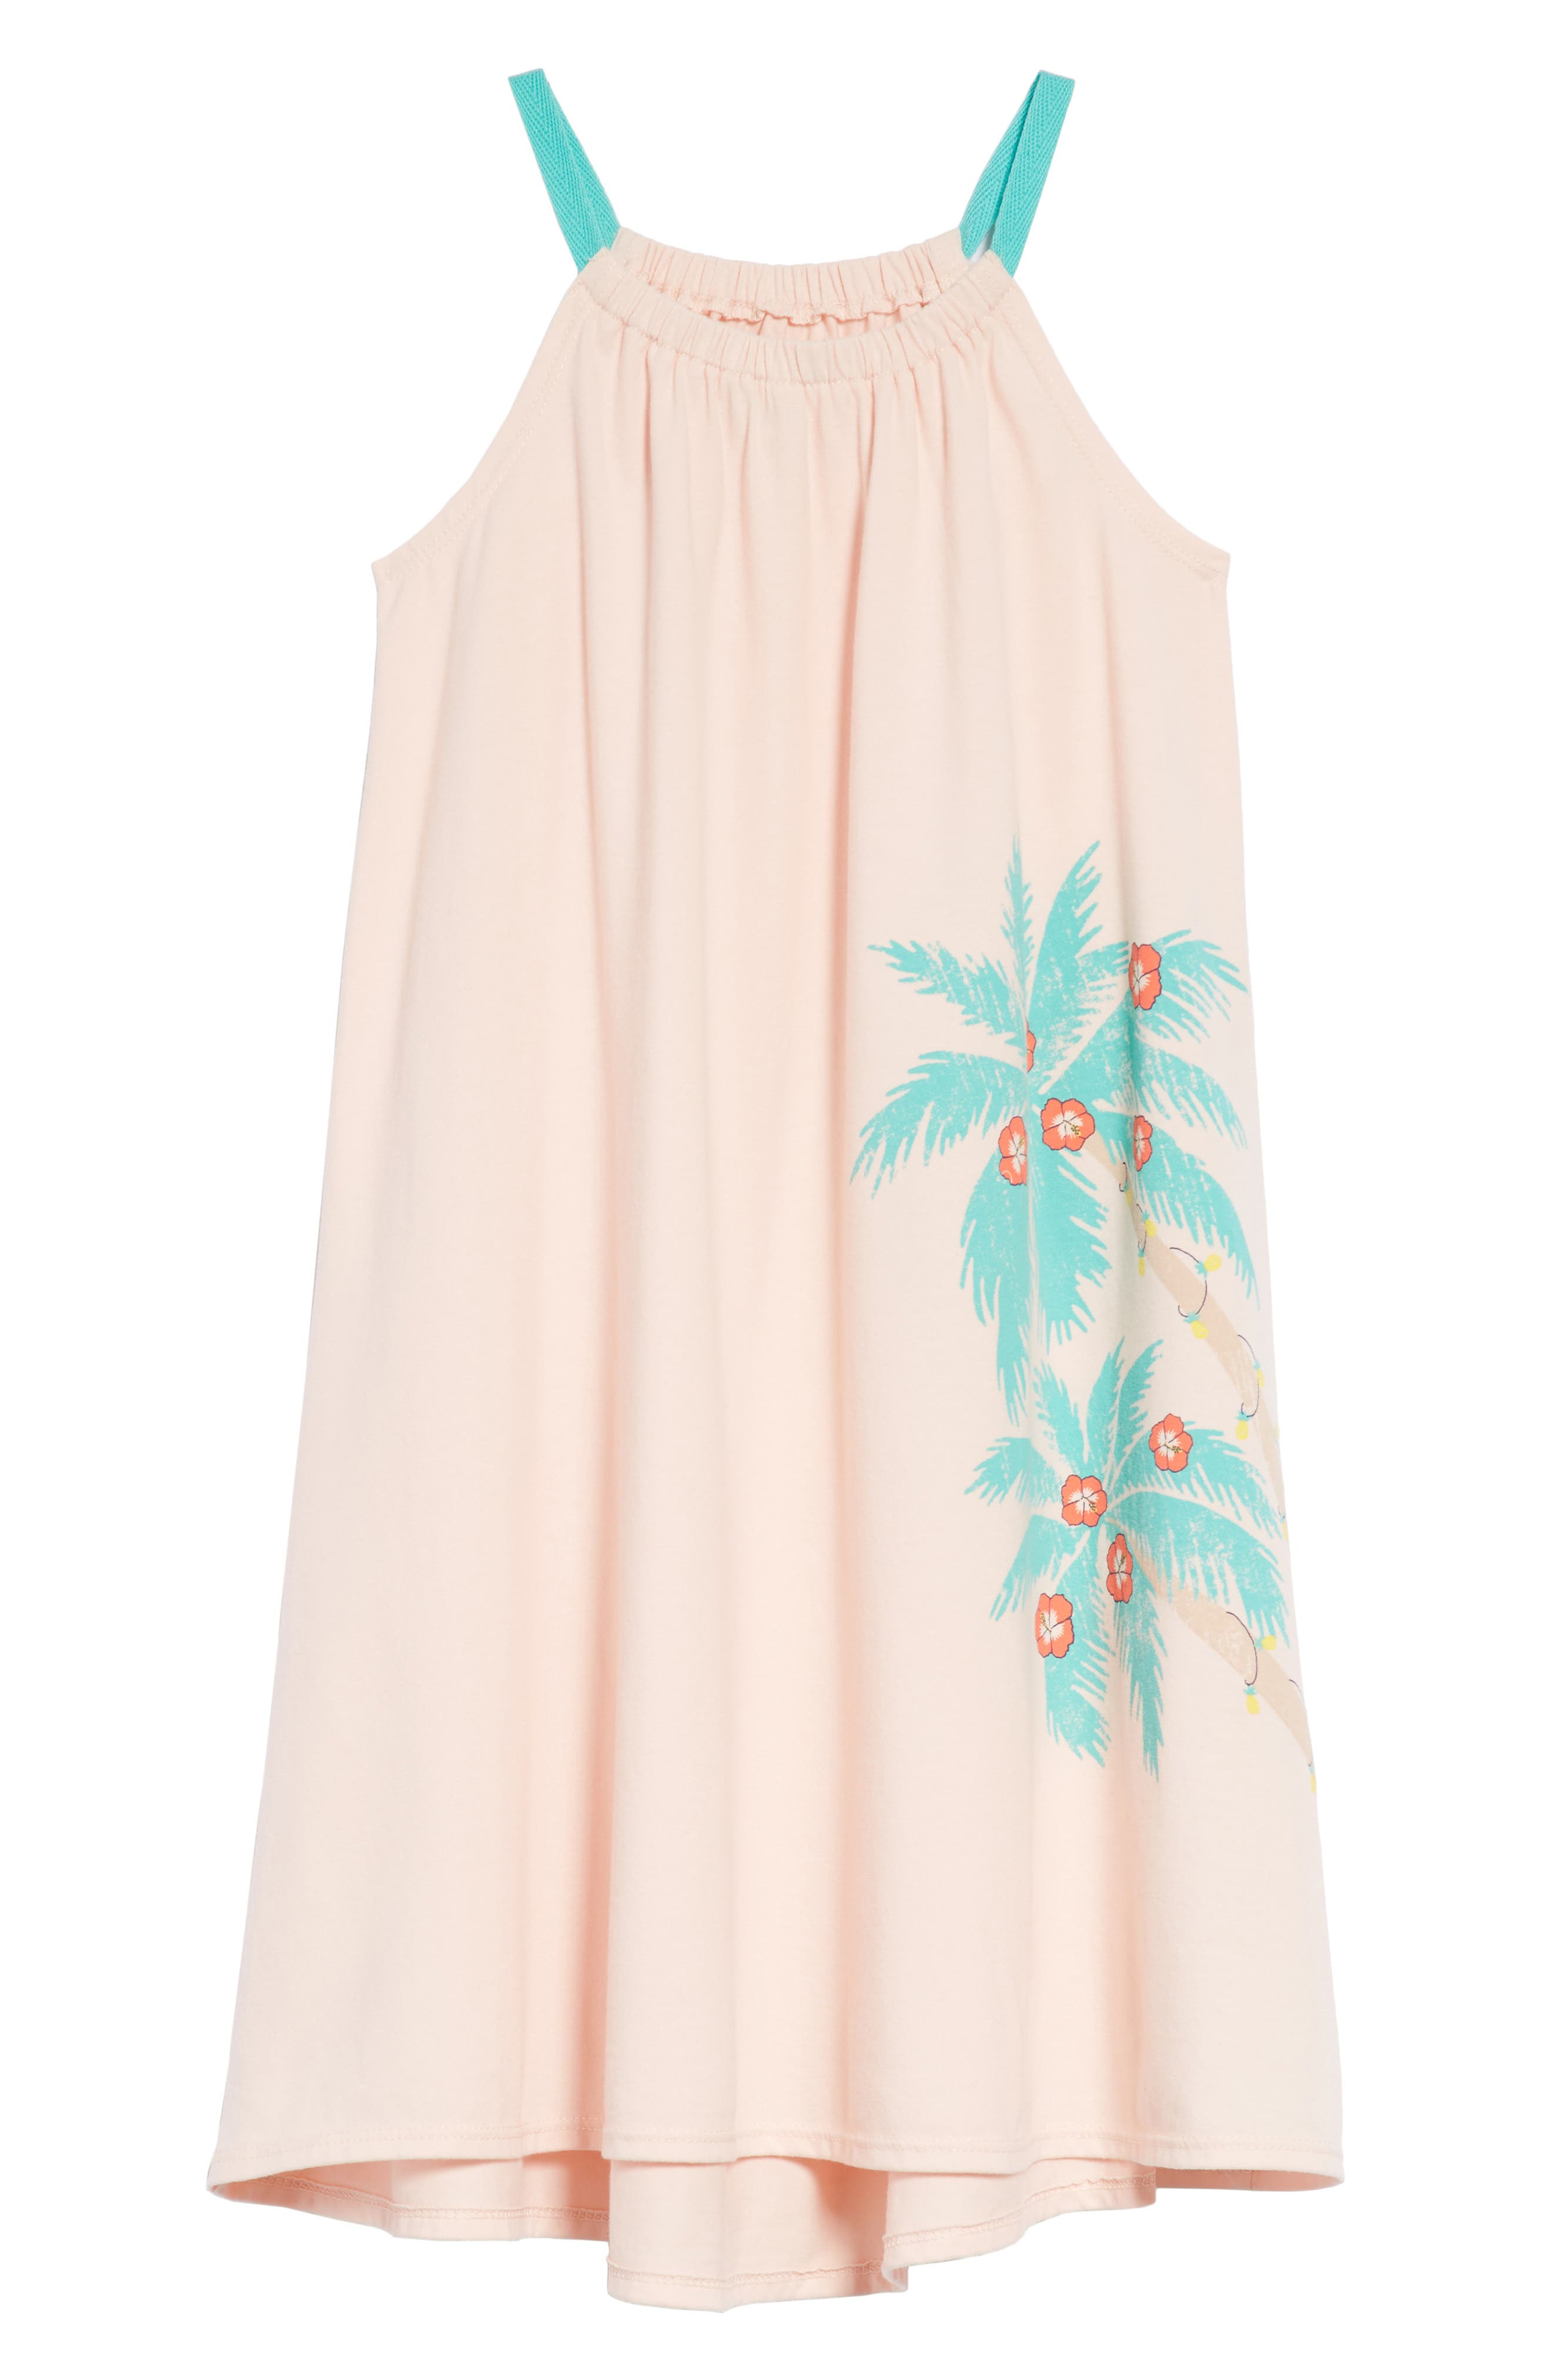 Palm Trees Graphic Swing Dress,                             Main thumbnail 1, color,                             Pink Chintz Palm Trees